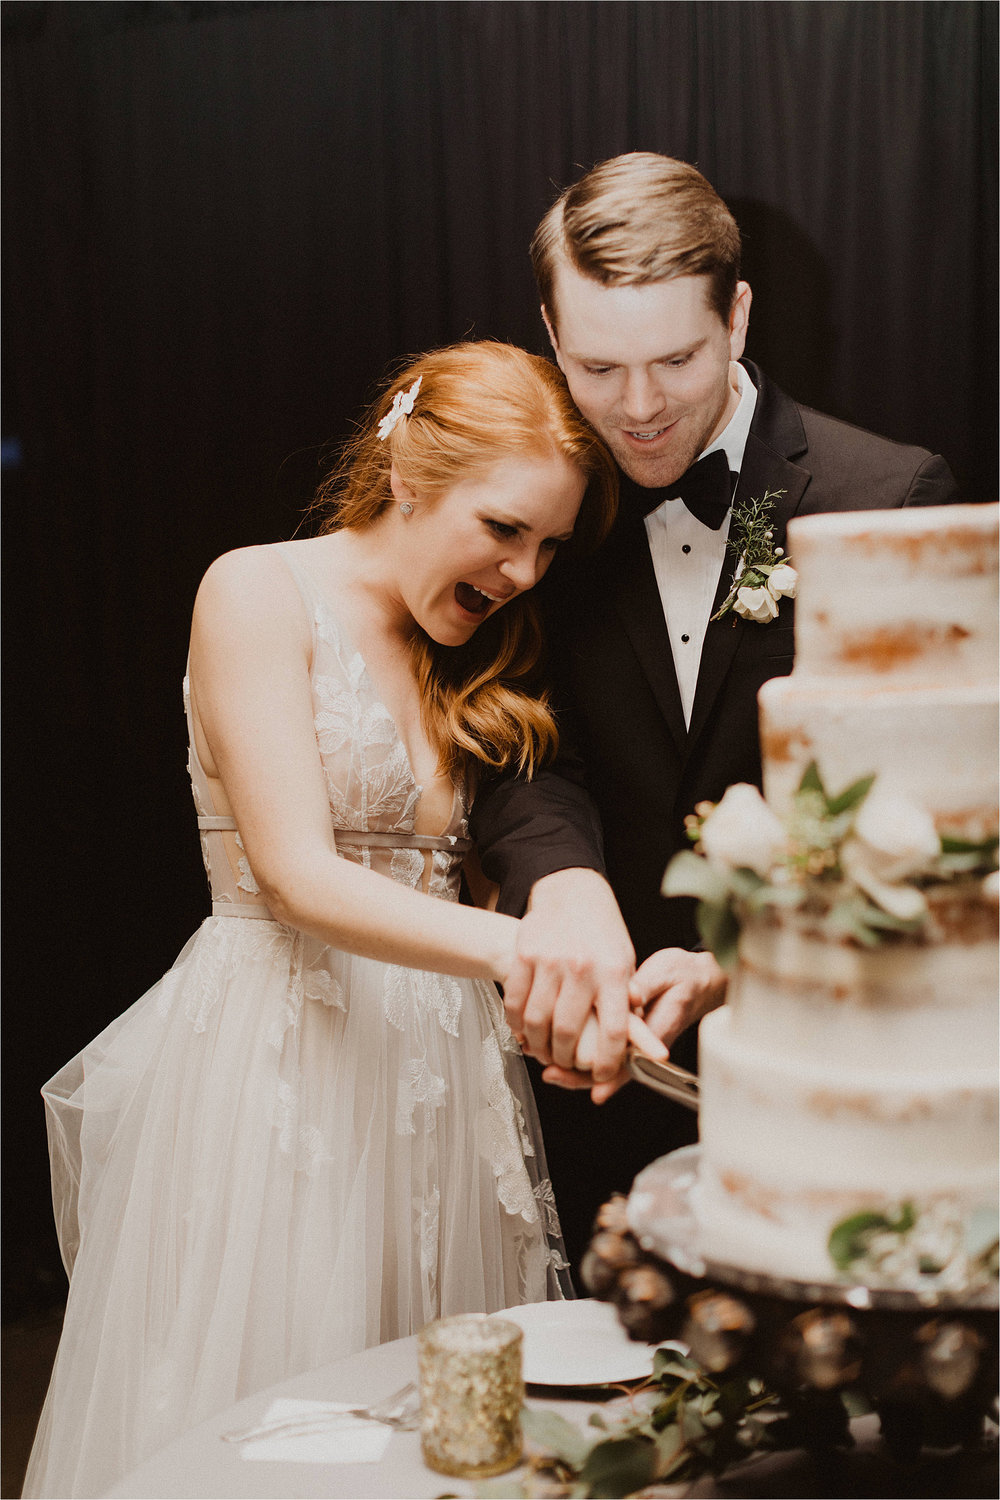 NashvilleWedding_NewYearsEveWedding_NYE_NashvilleWeddingPhotographer_LovelessWedding_Tennessee_MollyPeachPhotography-106.jpg